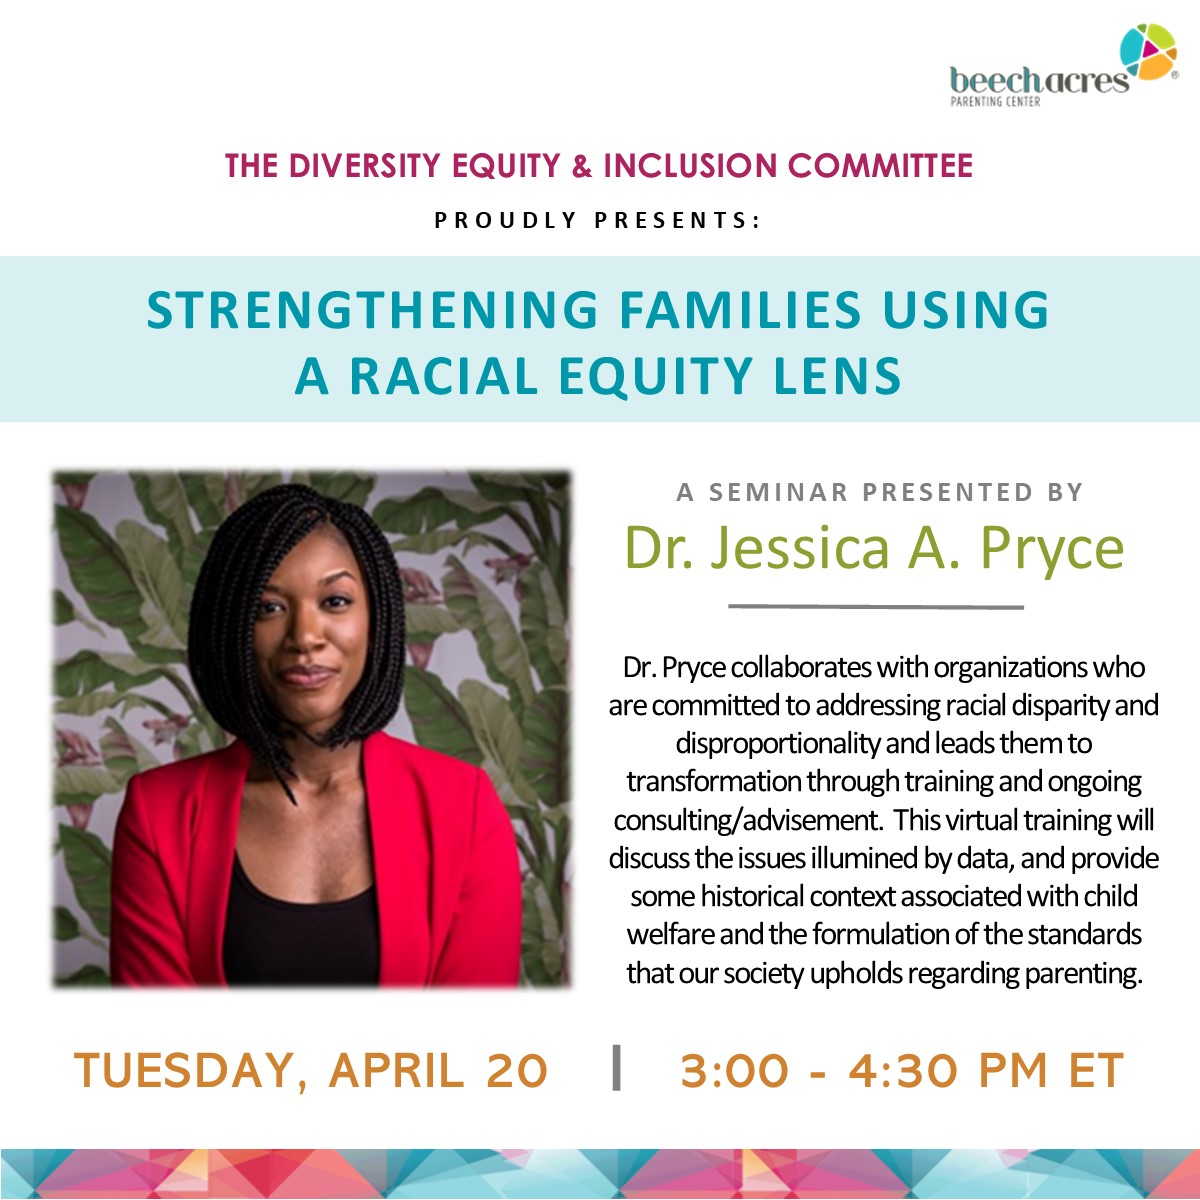 This event is tomorrow! Don't miss this opportunity to hear from @JessPryce https://t.co/khHVeGUM5R